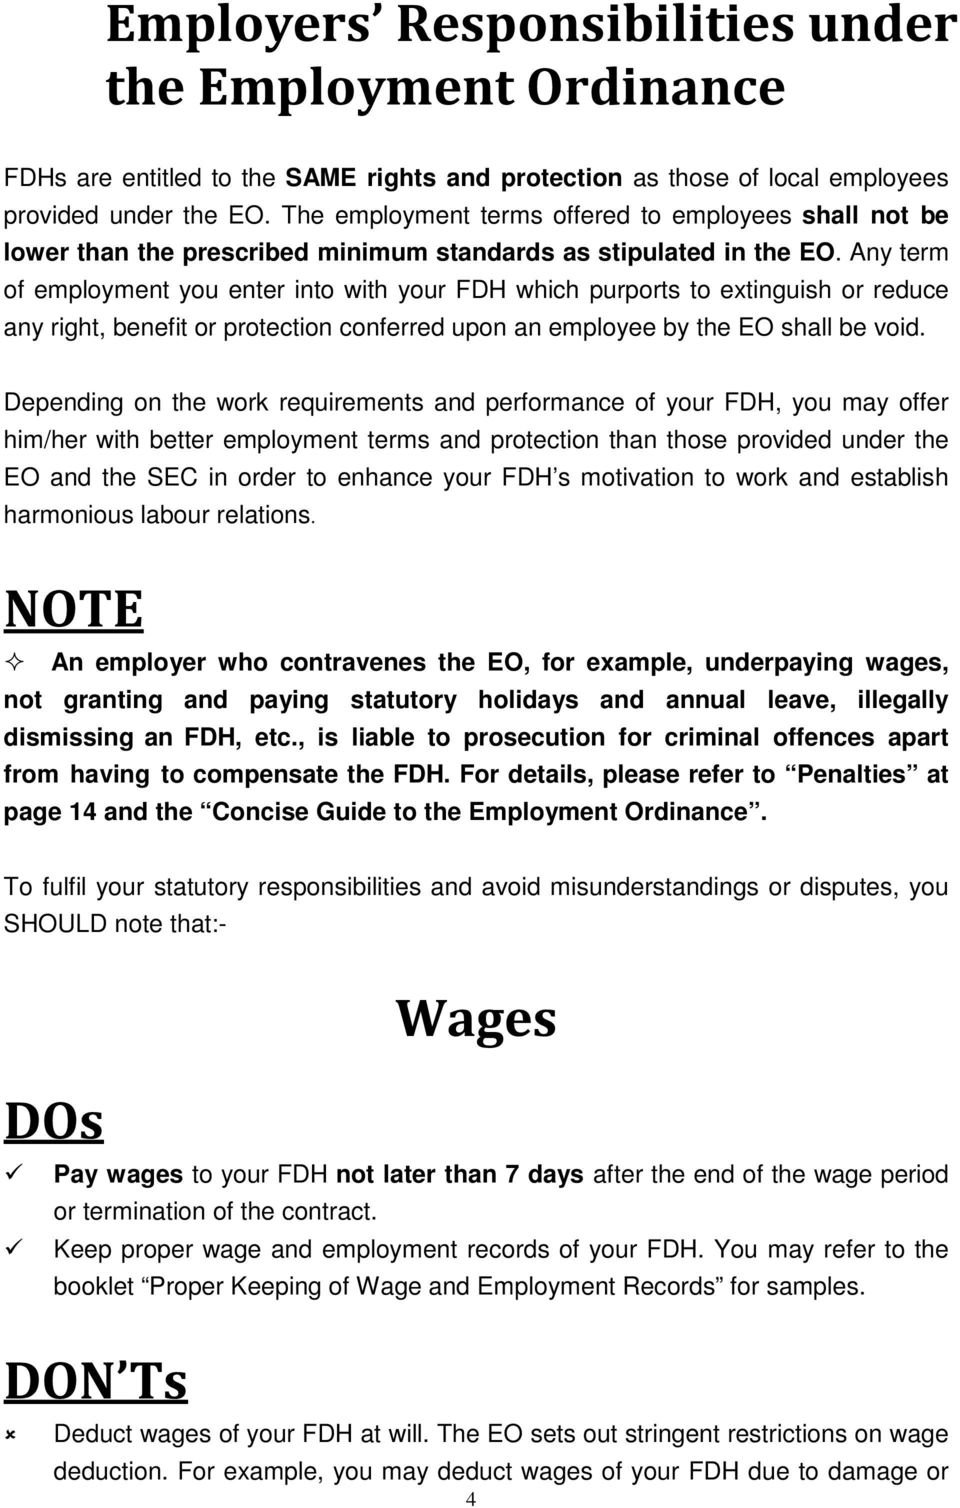 Any term of employment you enter into with your FDH which purports to extinguish or reduce any right, benefit or protection conferred upon an employee by the EO shall be void.